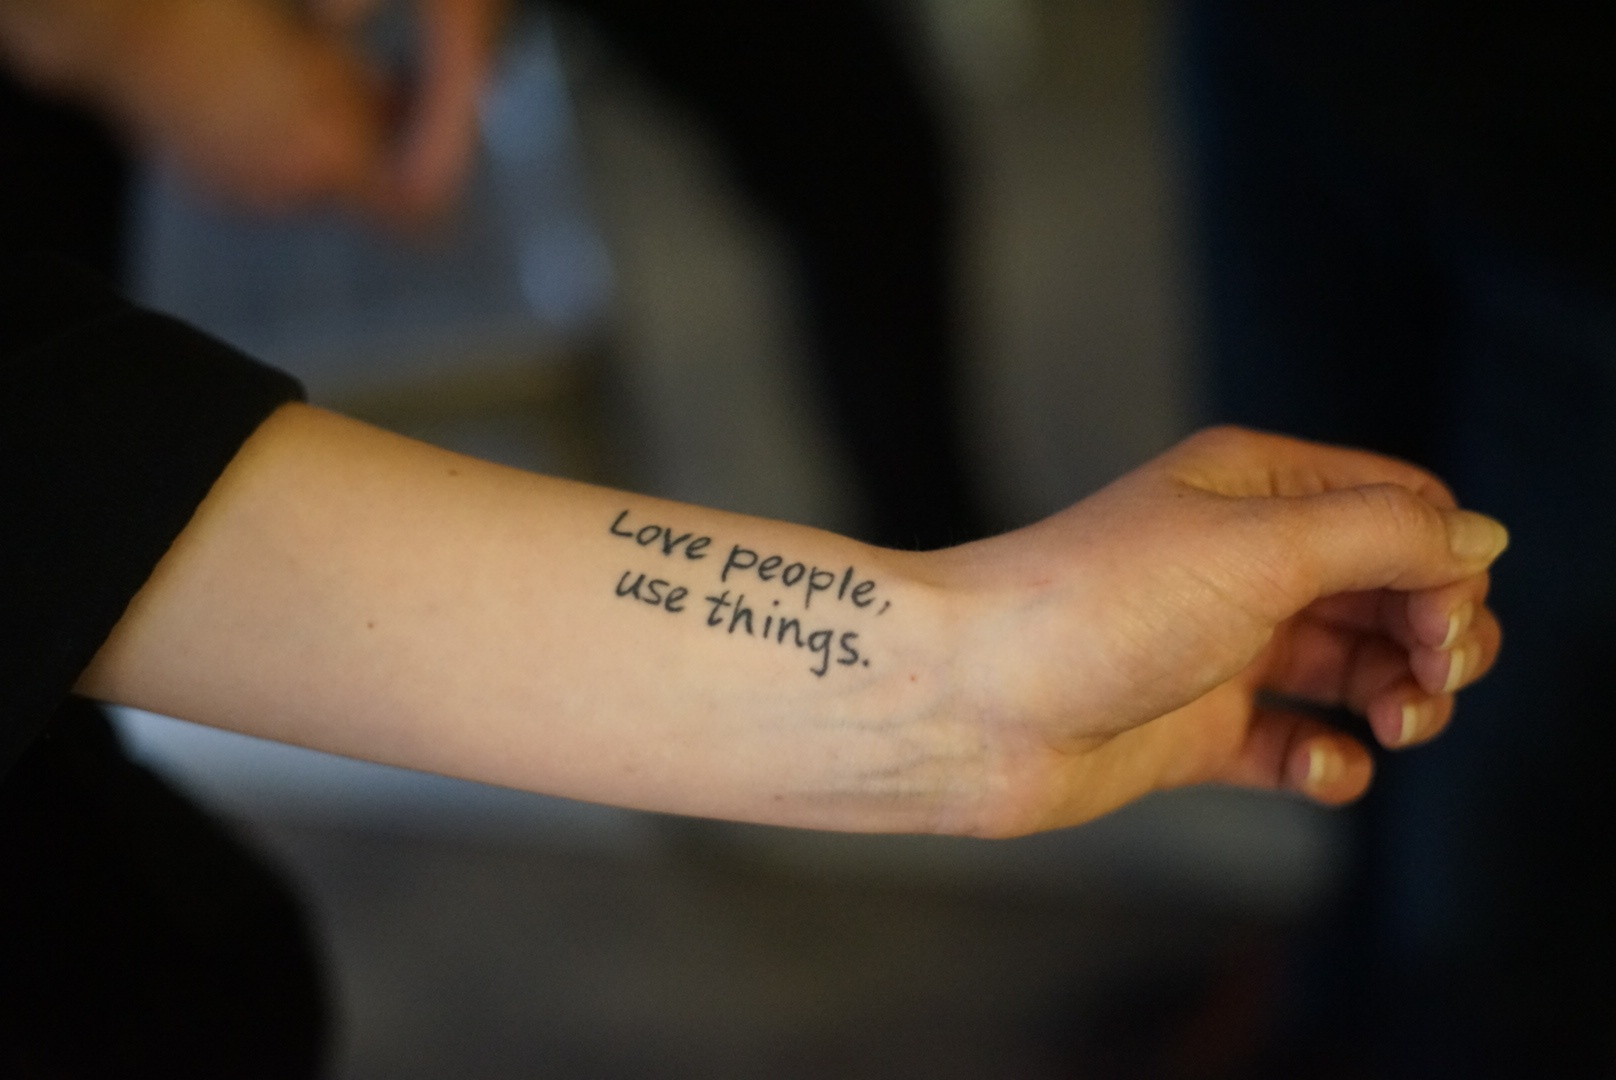 Love people, use things